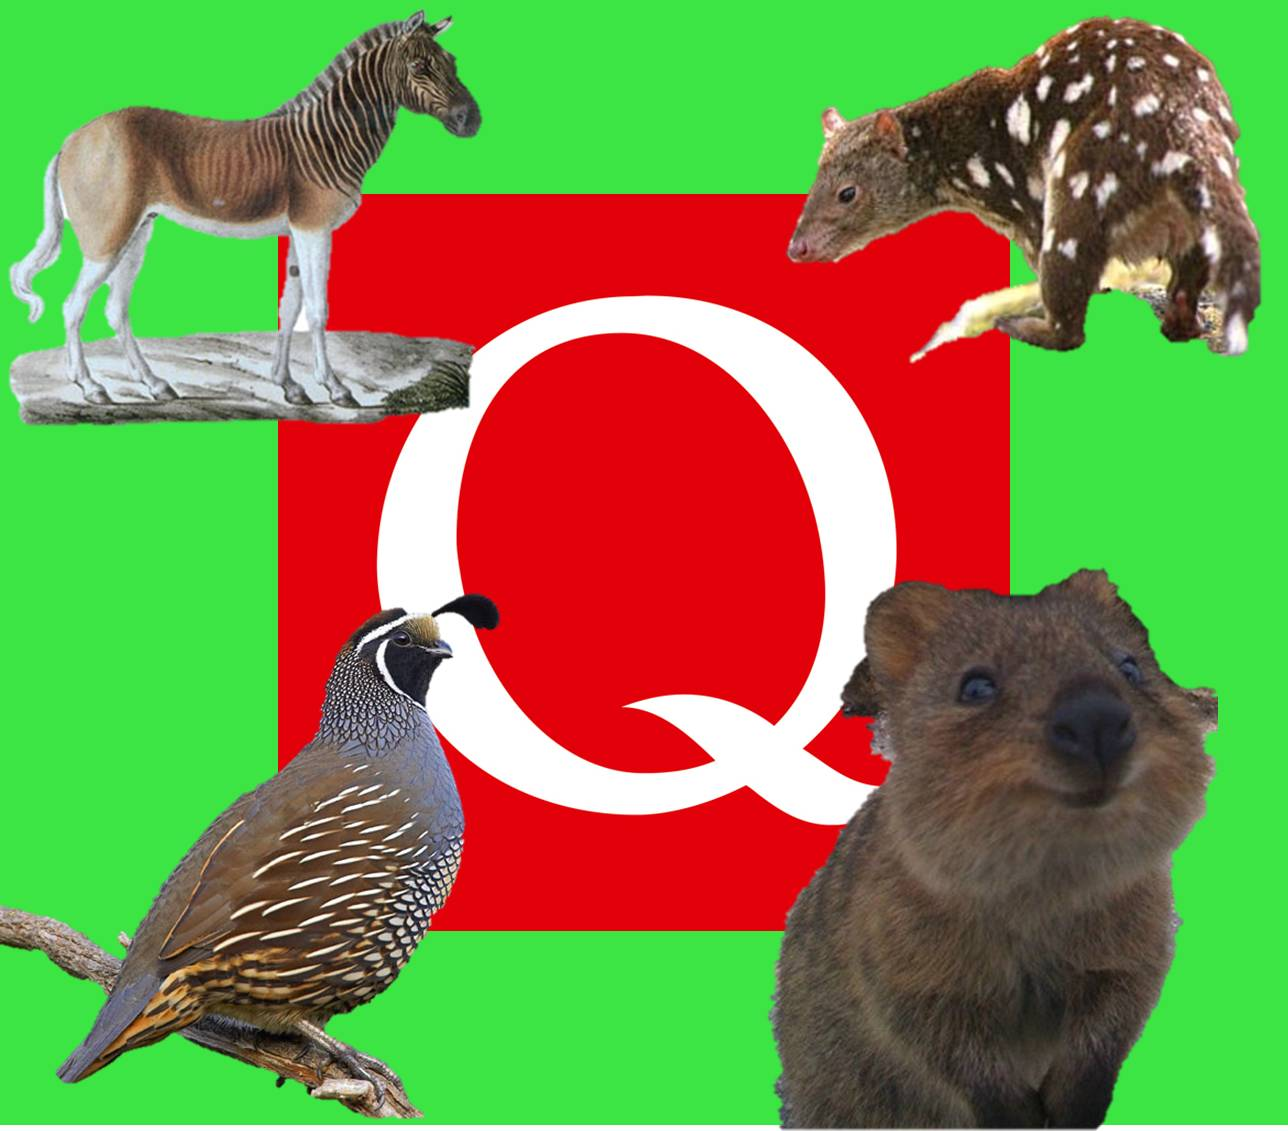 The Natural World: Alphabet Animals: The Letter Q (Extant)